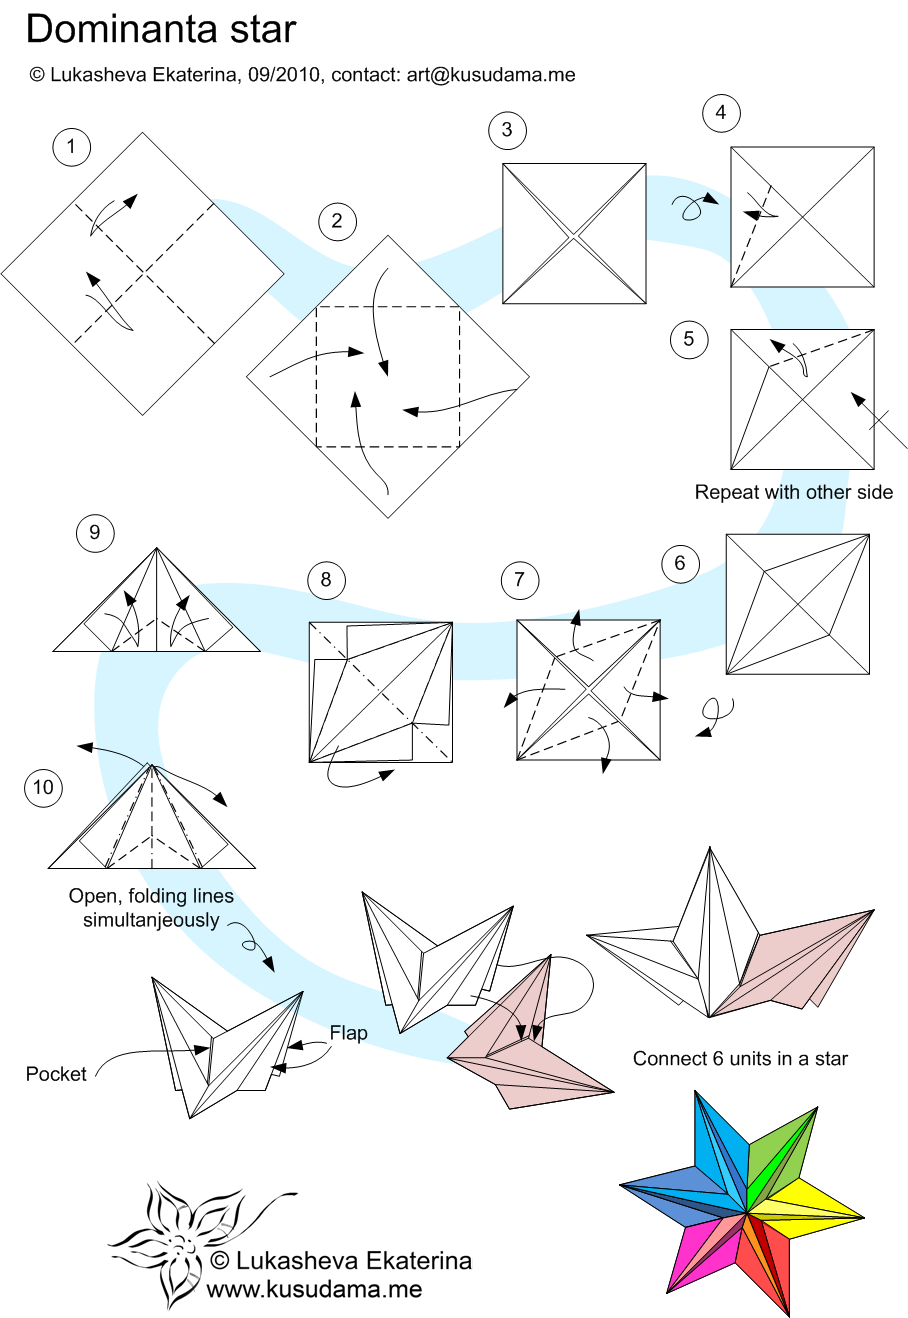 origami dominanta star origami stars pinterest origami about origami diagrams on pinterest origami stars origami and stars [ 908 x 1318 Pixel ]